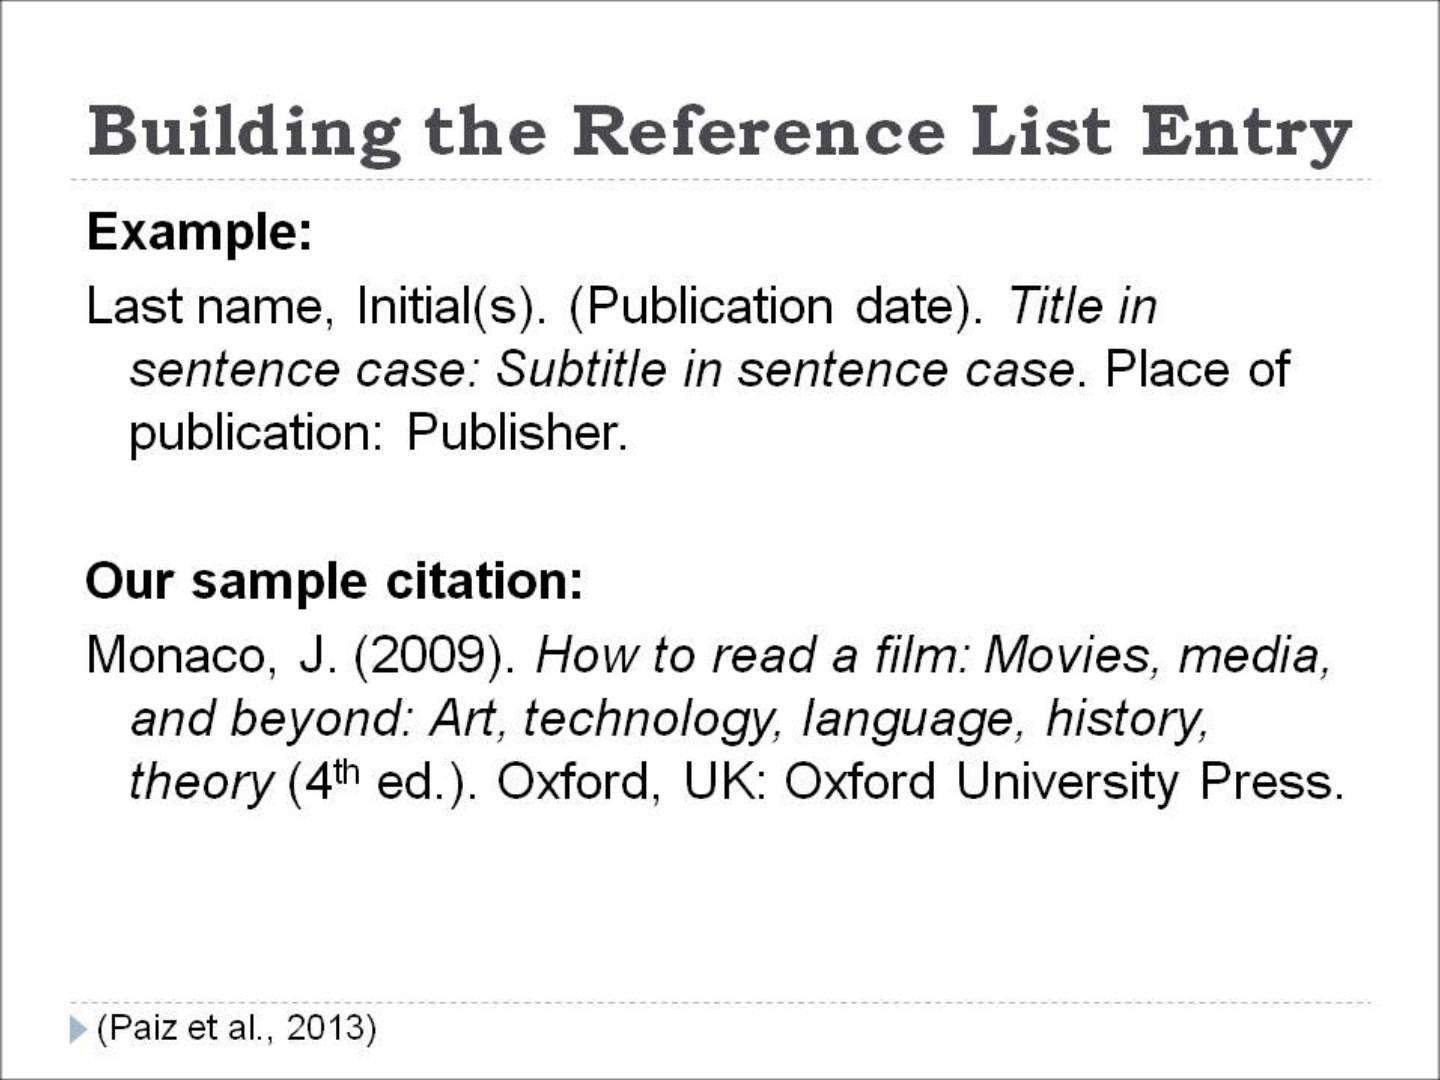 apa format citing generator Free citation machine and bibliography generating tool for apa, mla and chicago citation styles to help you properly cite every source of information in your paperwork.